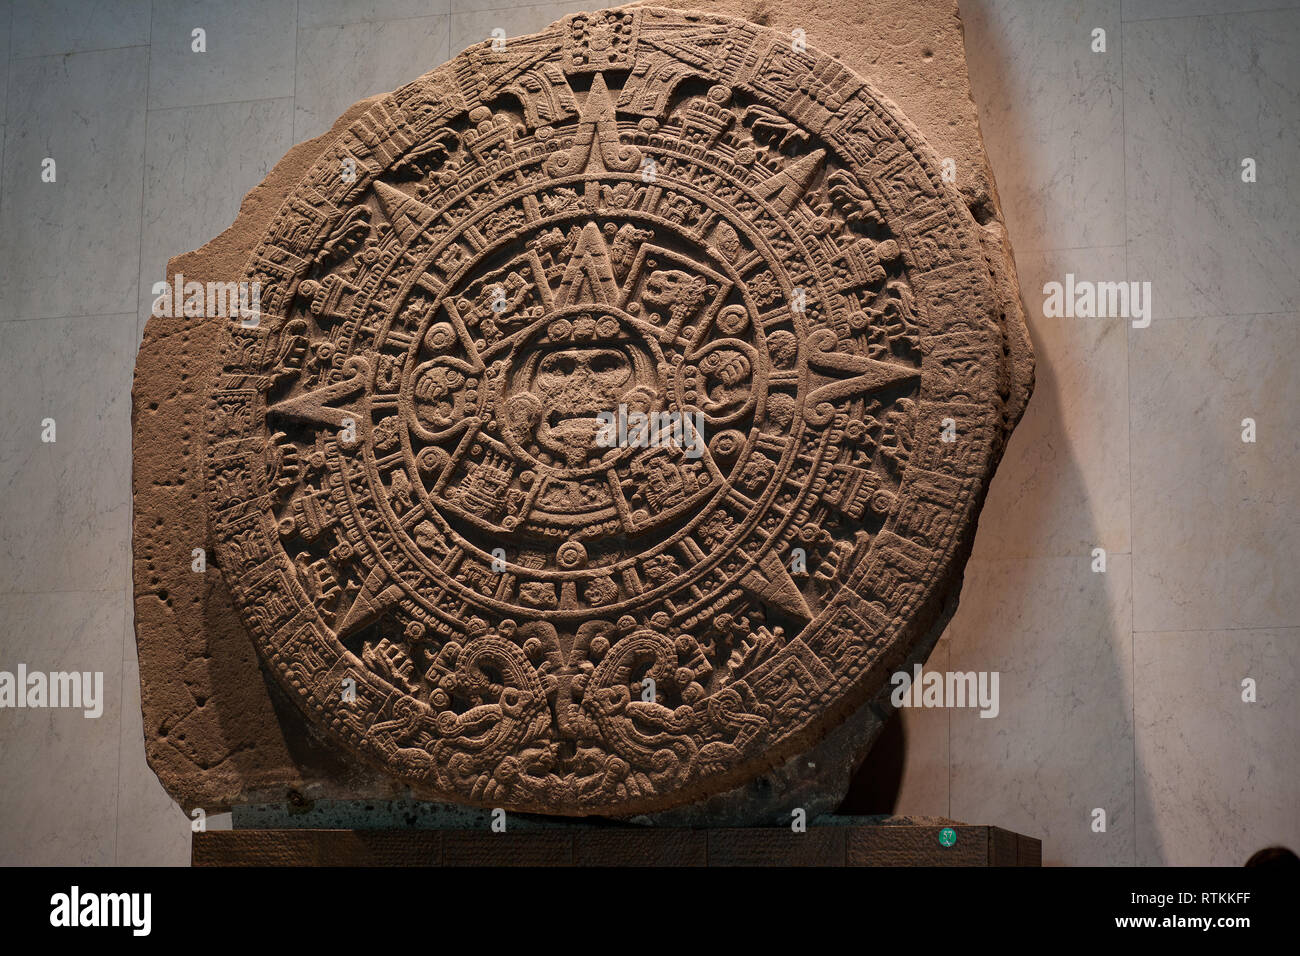 Kff Mexico The Aztec Sun Stone Spanish Piedra Del Sol Is A Late Post